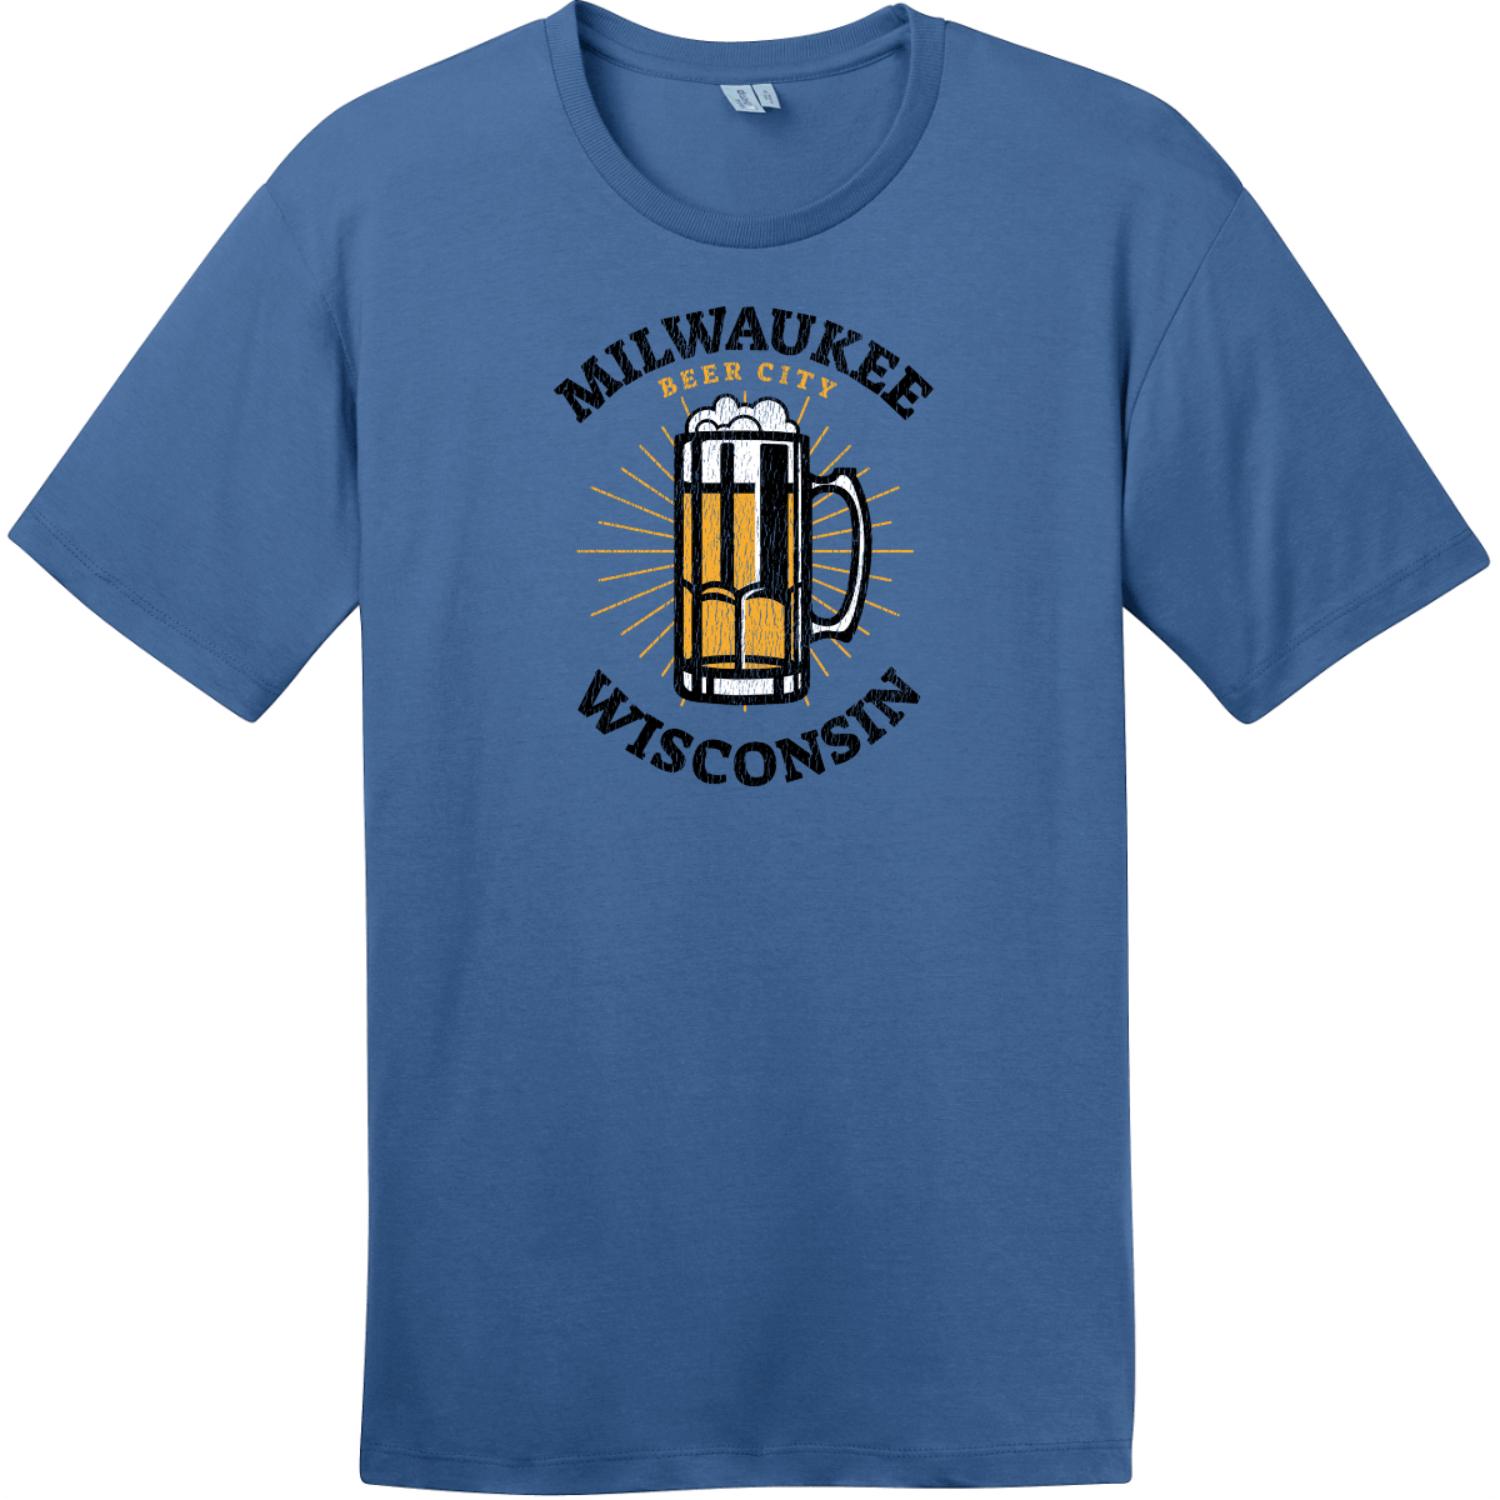 Milwaukee Wisconsin Beer City T-Shirt Maritime Blue District Perfect Weight Tee DT104